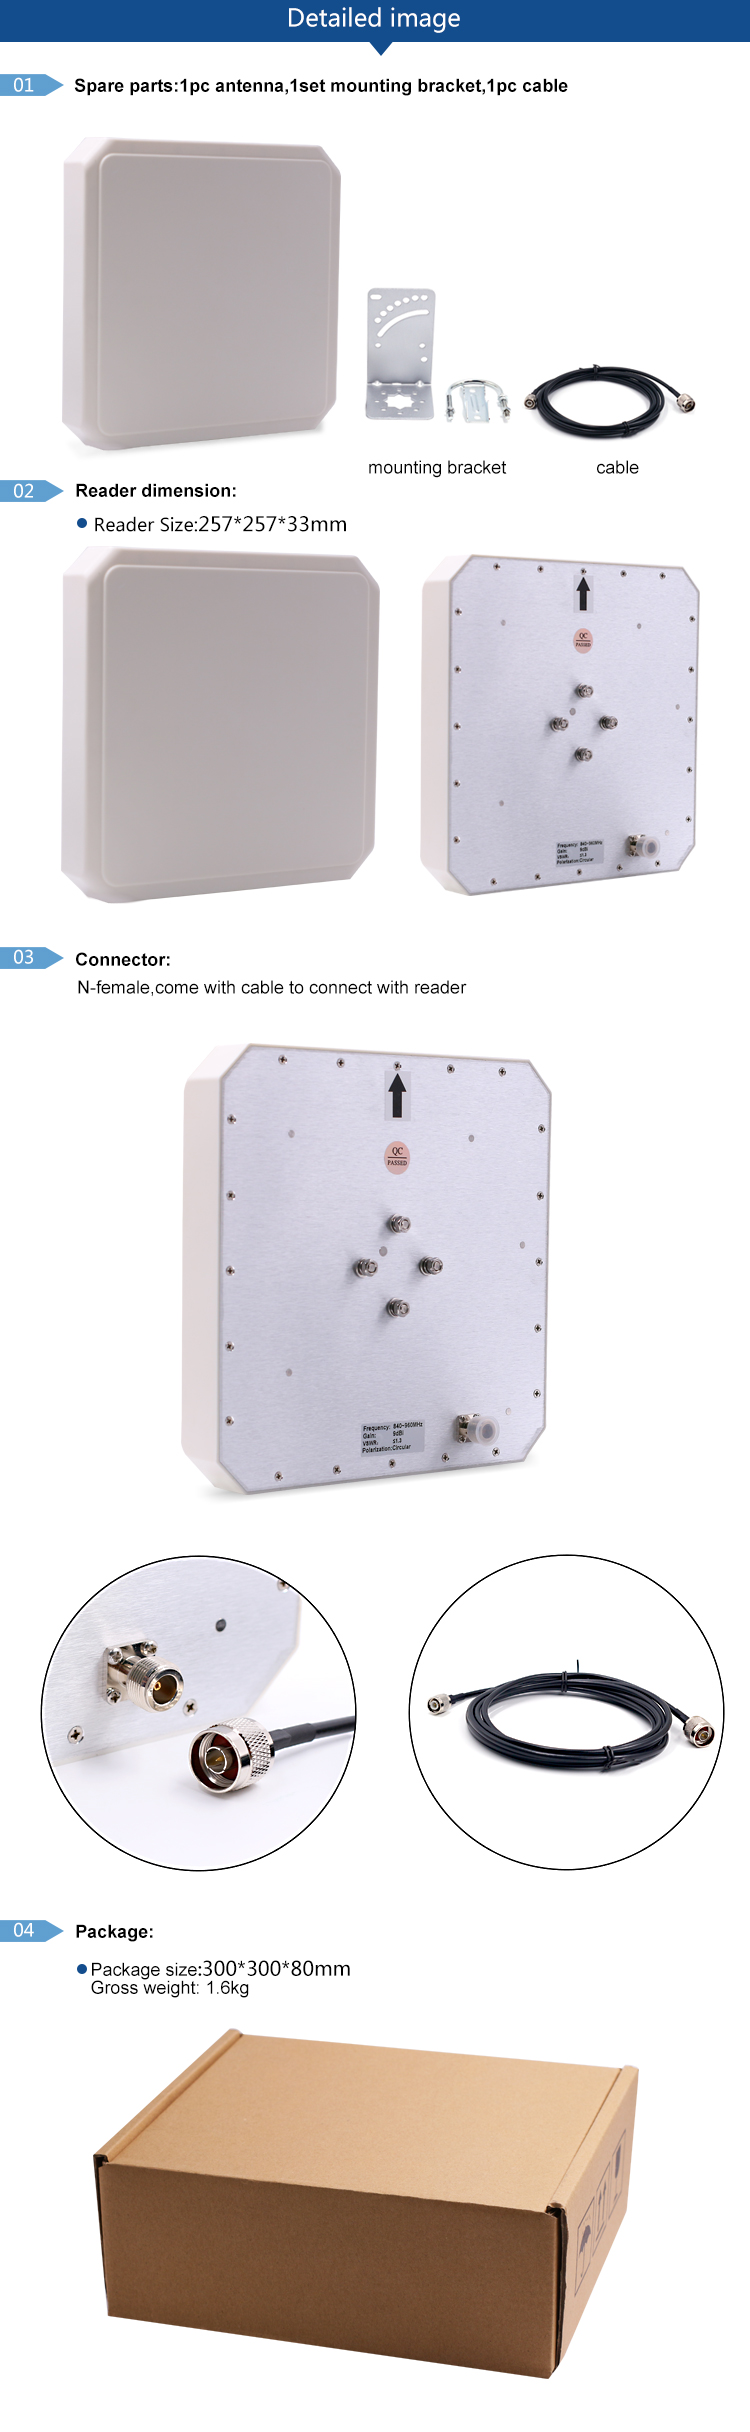 Access Control devices with feedback cable 915mhz uhf rfid antenna